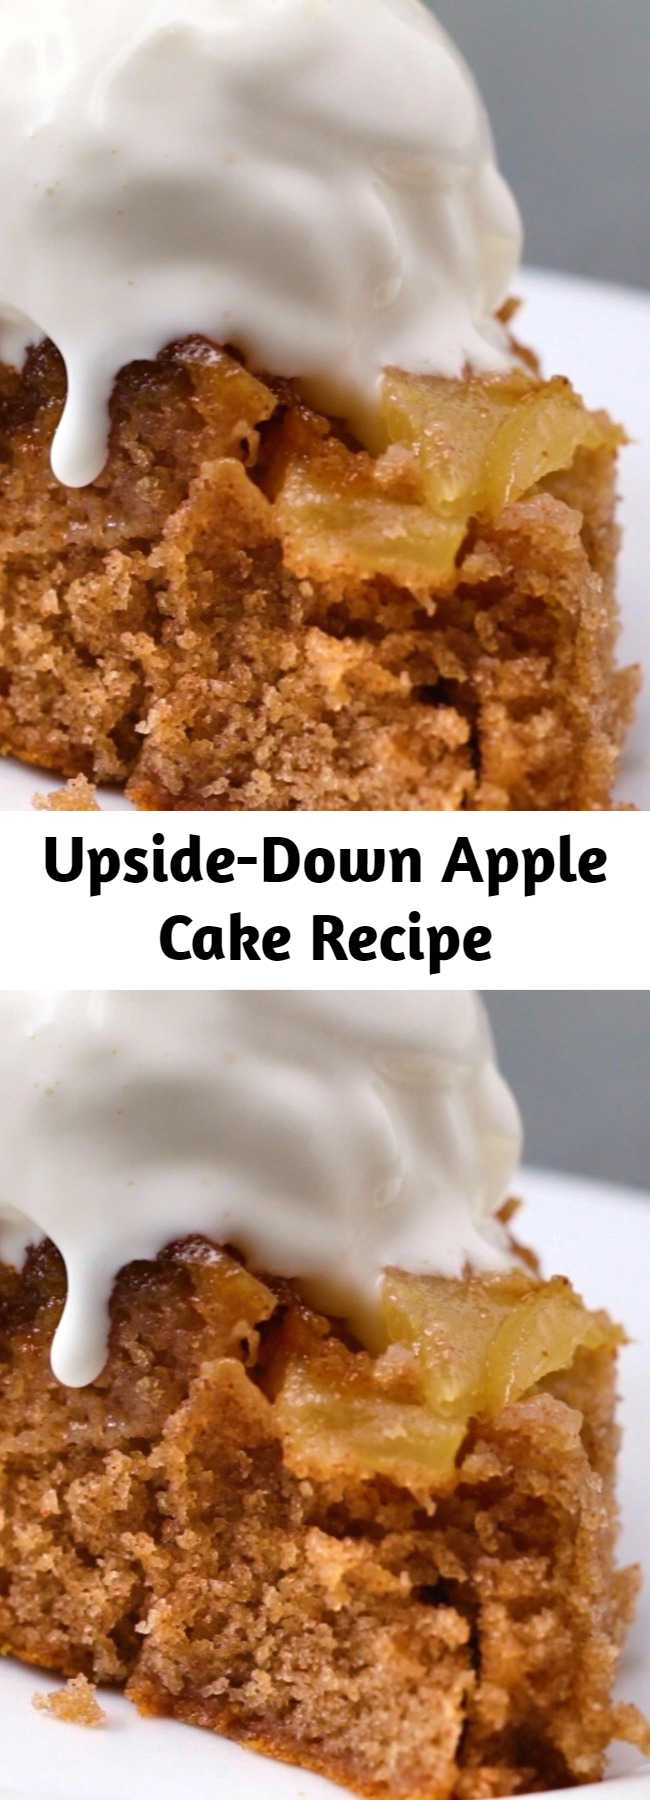 Upside-Down Apple Cake Recipe - This apple cake is absolutely scrumptious! Especially with a side of vanilla ice cream.